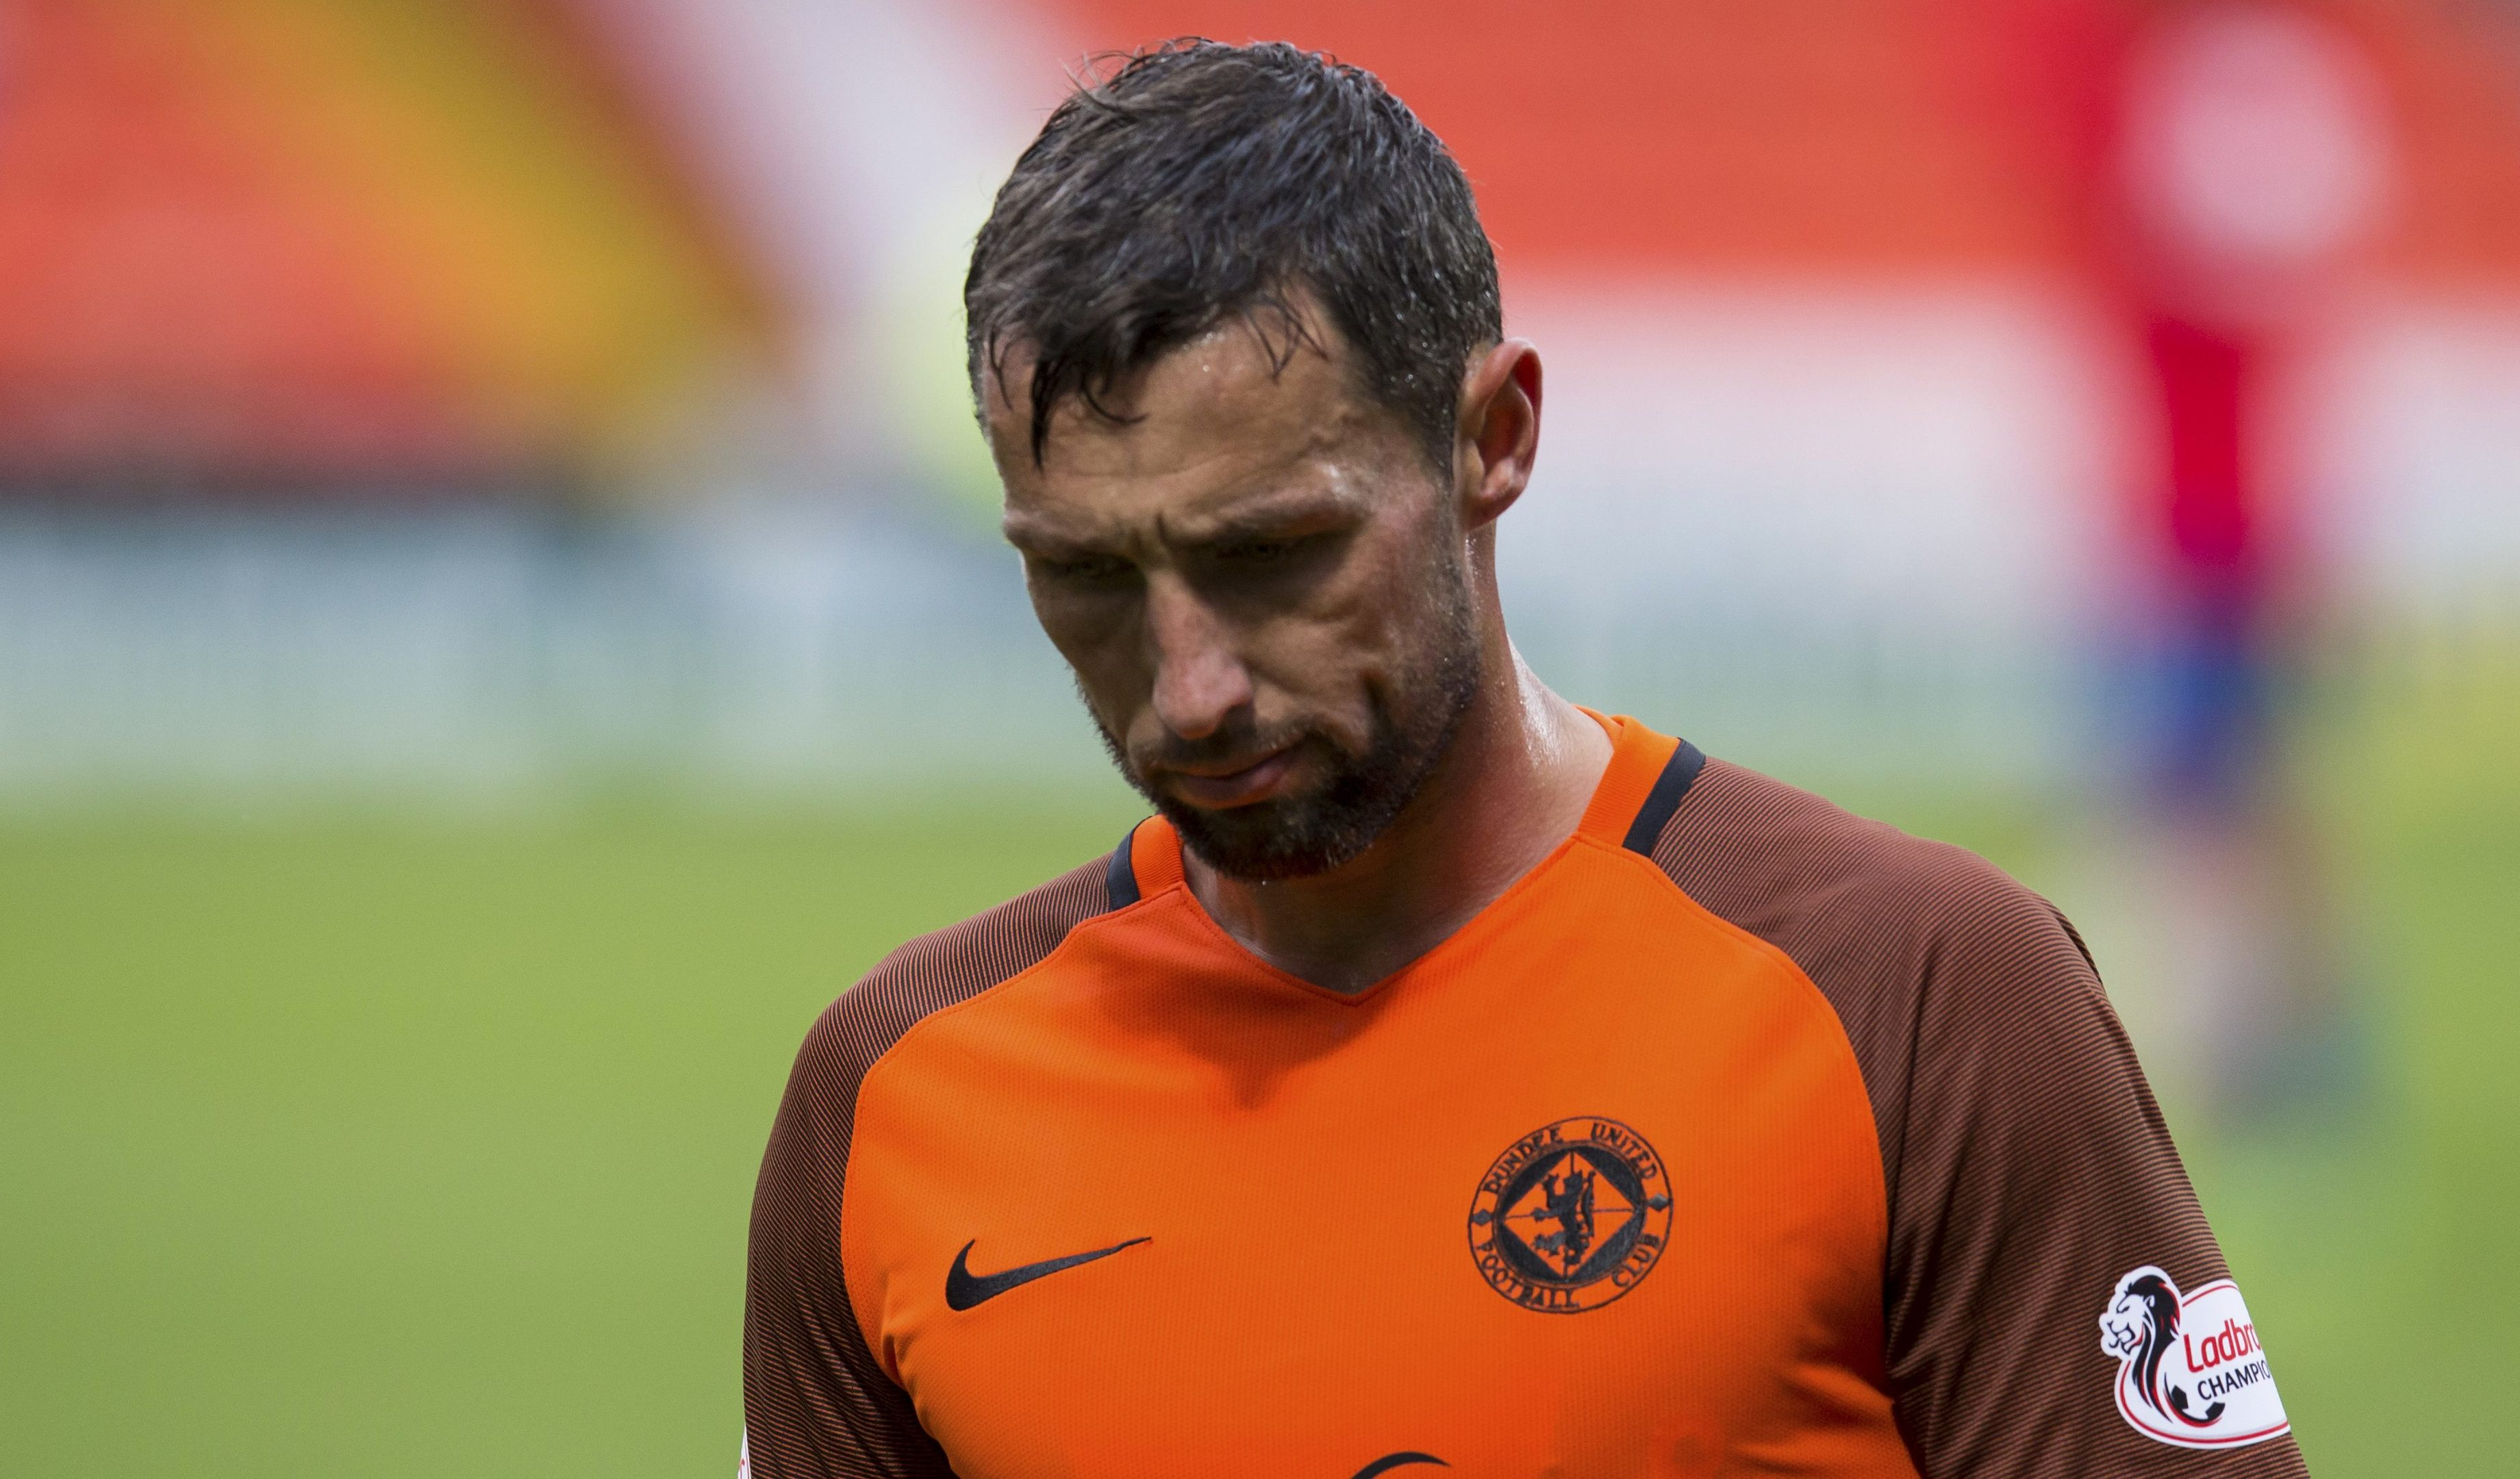 Dundee United's Scott McDonald.